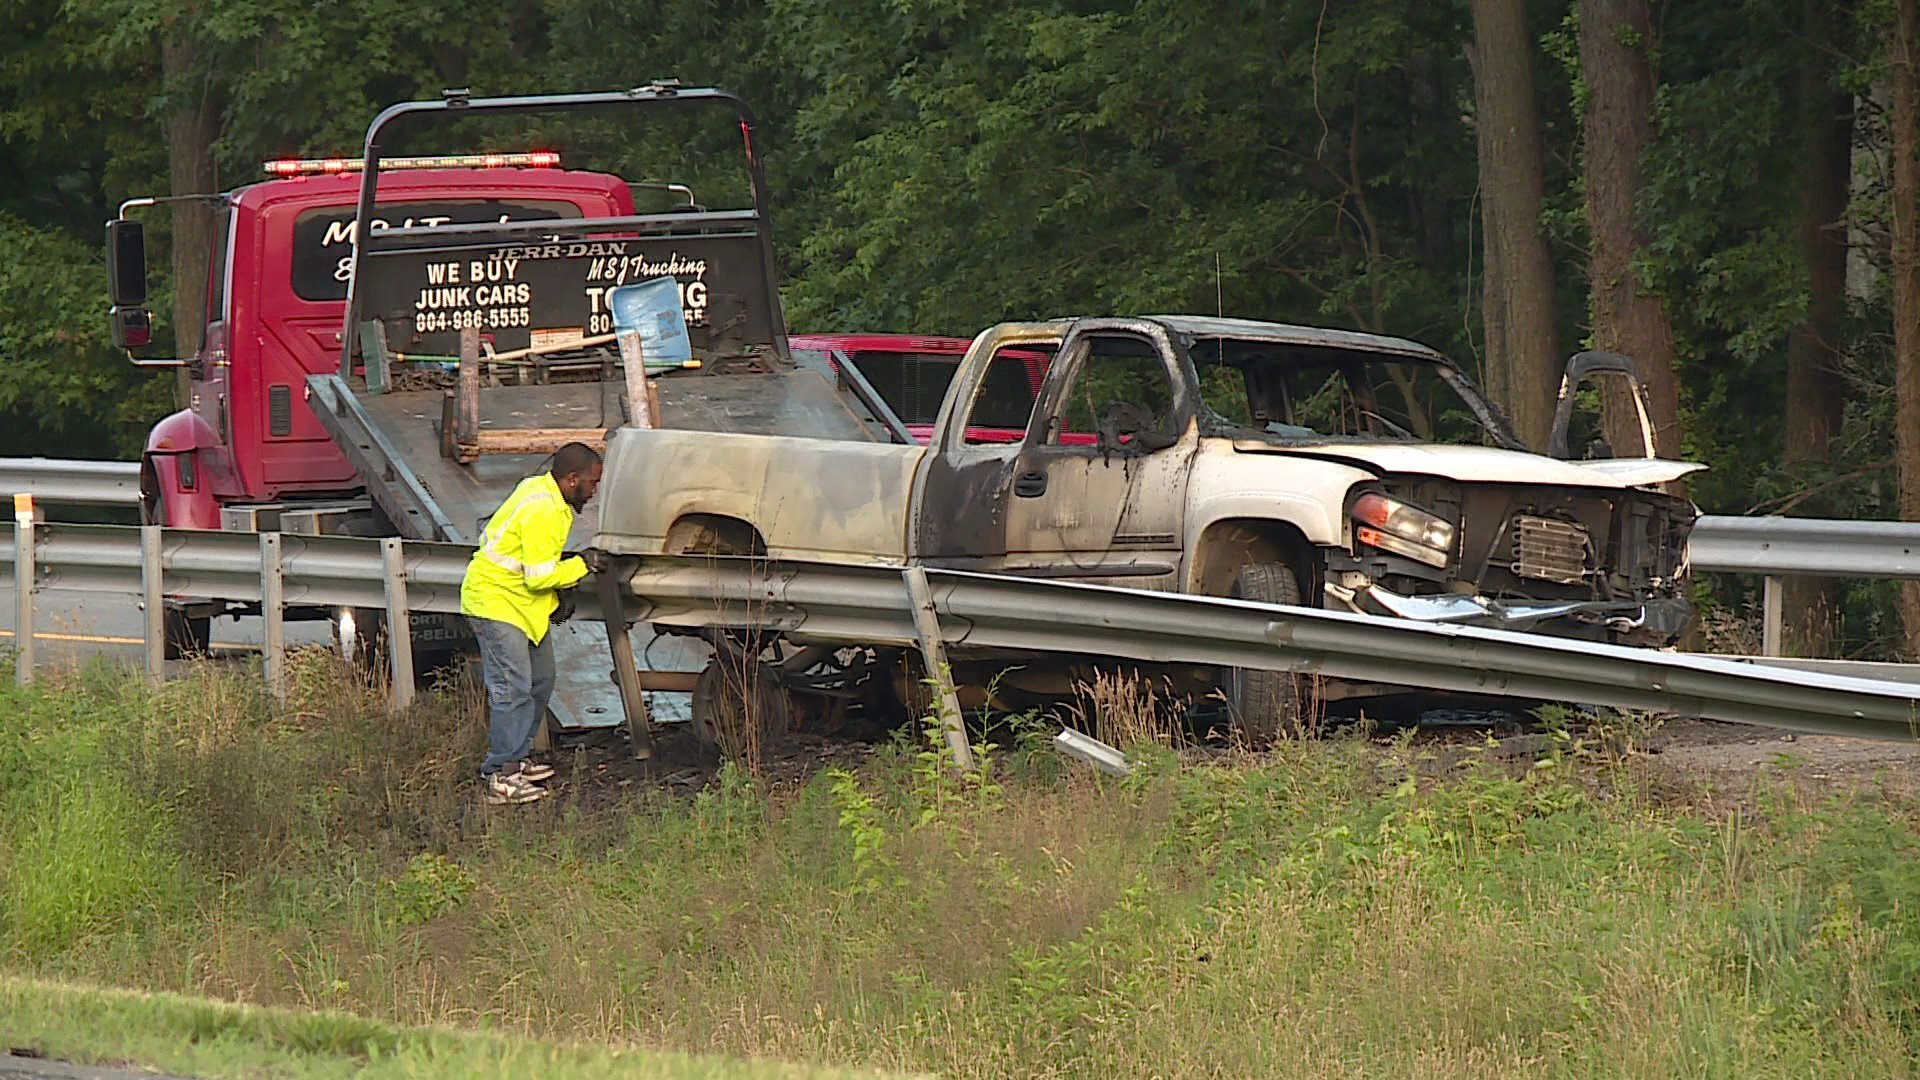 Photos: Pickup truck catches fire; I-64 east closed near AirportDrive